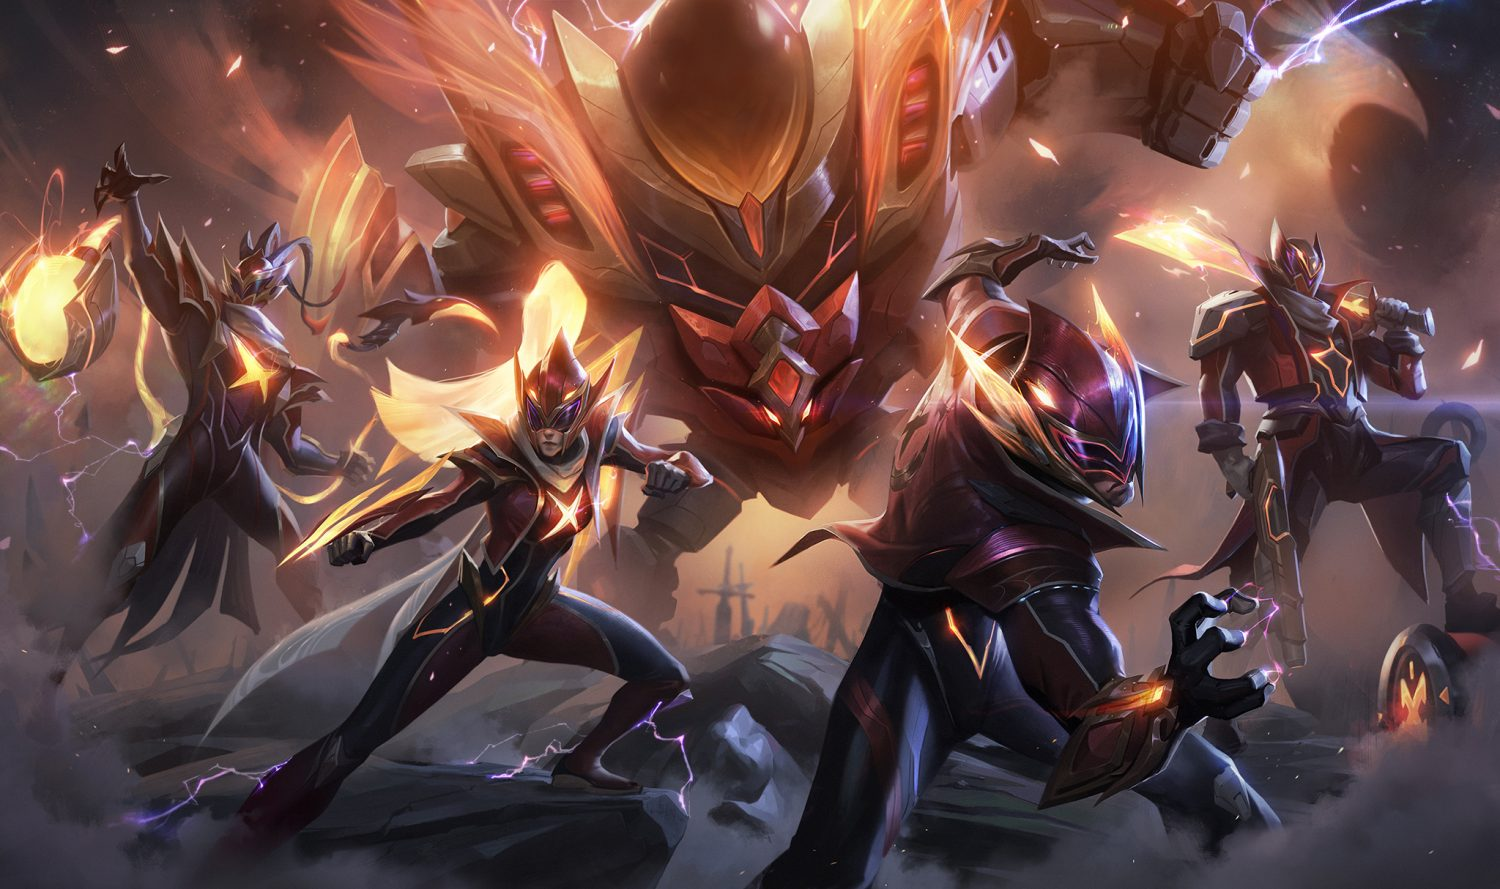 League has a lot of skins, but how many skins does League really have? The answer is 1132.